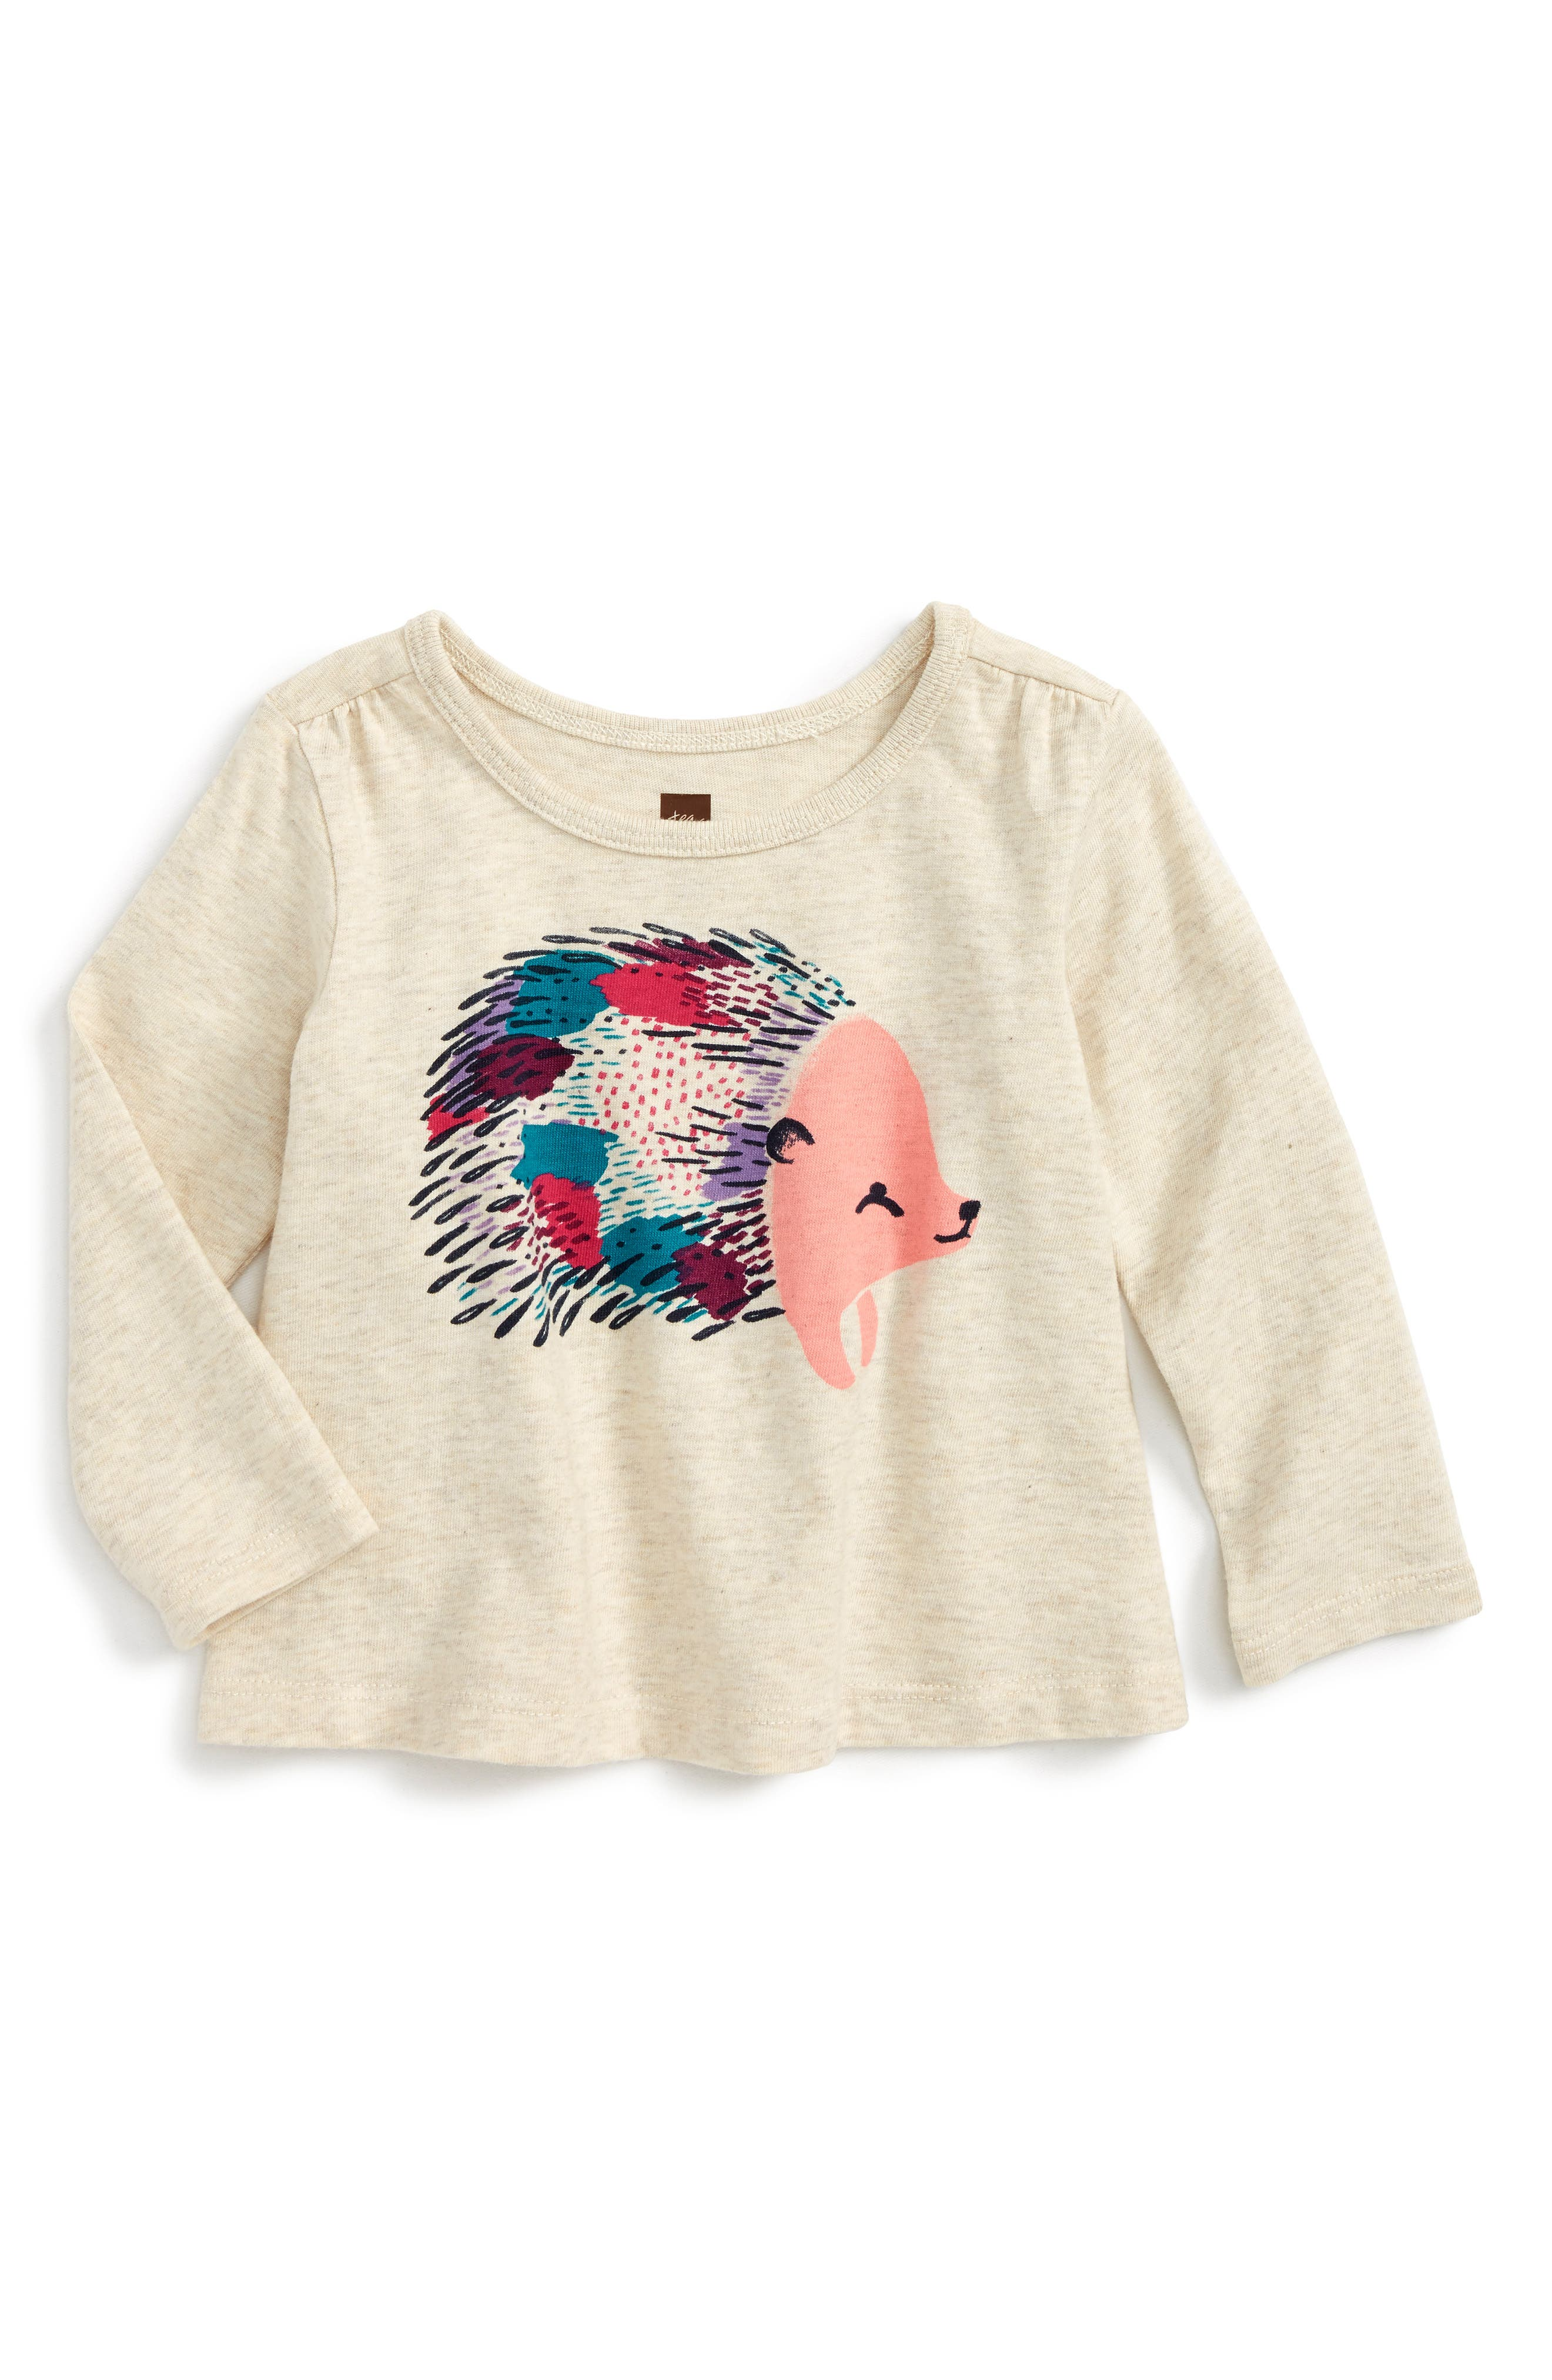 Tea Collection Hedgehog Graphic Tee (Baby Girls)